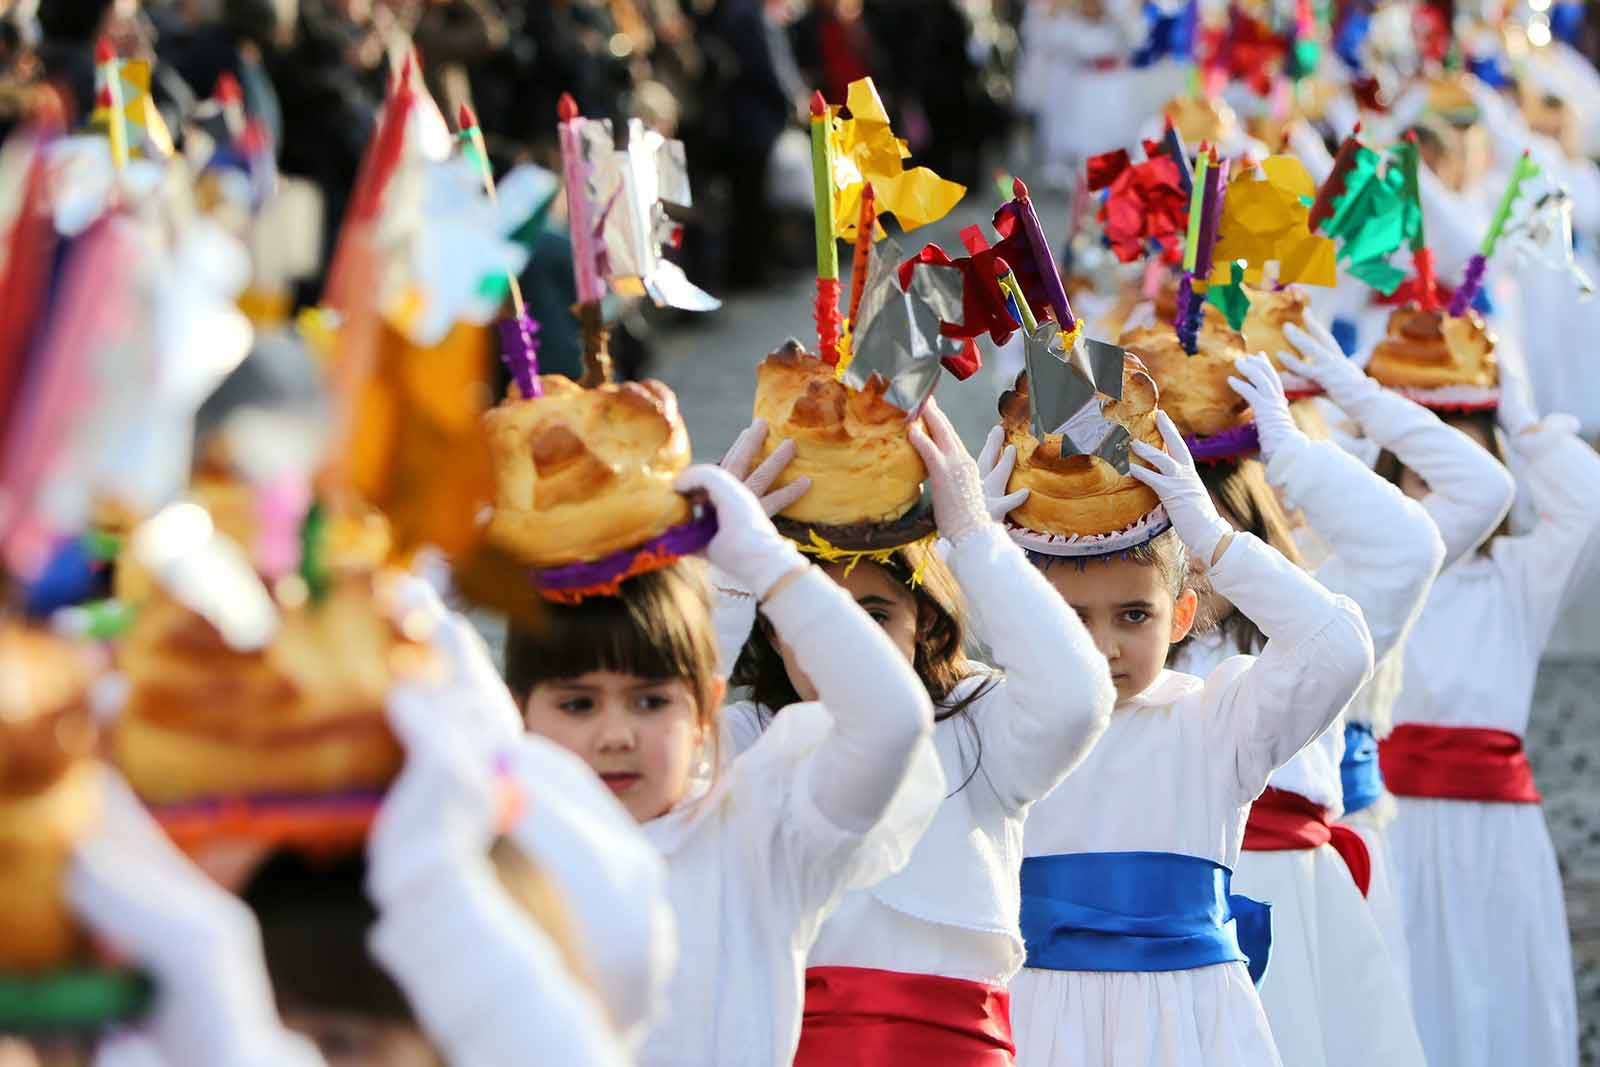 Young girls parading with fogaça cakes on their heads.